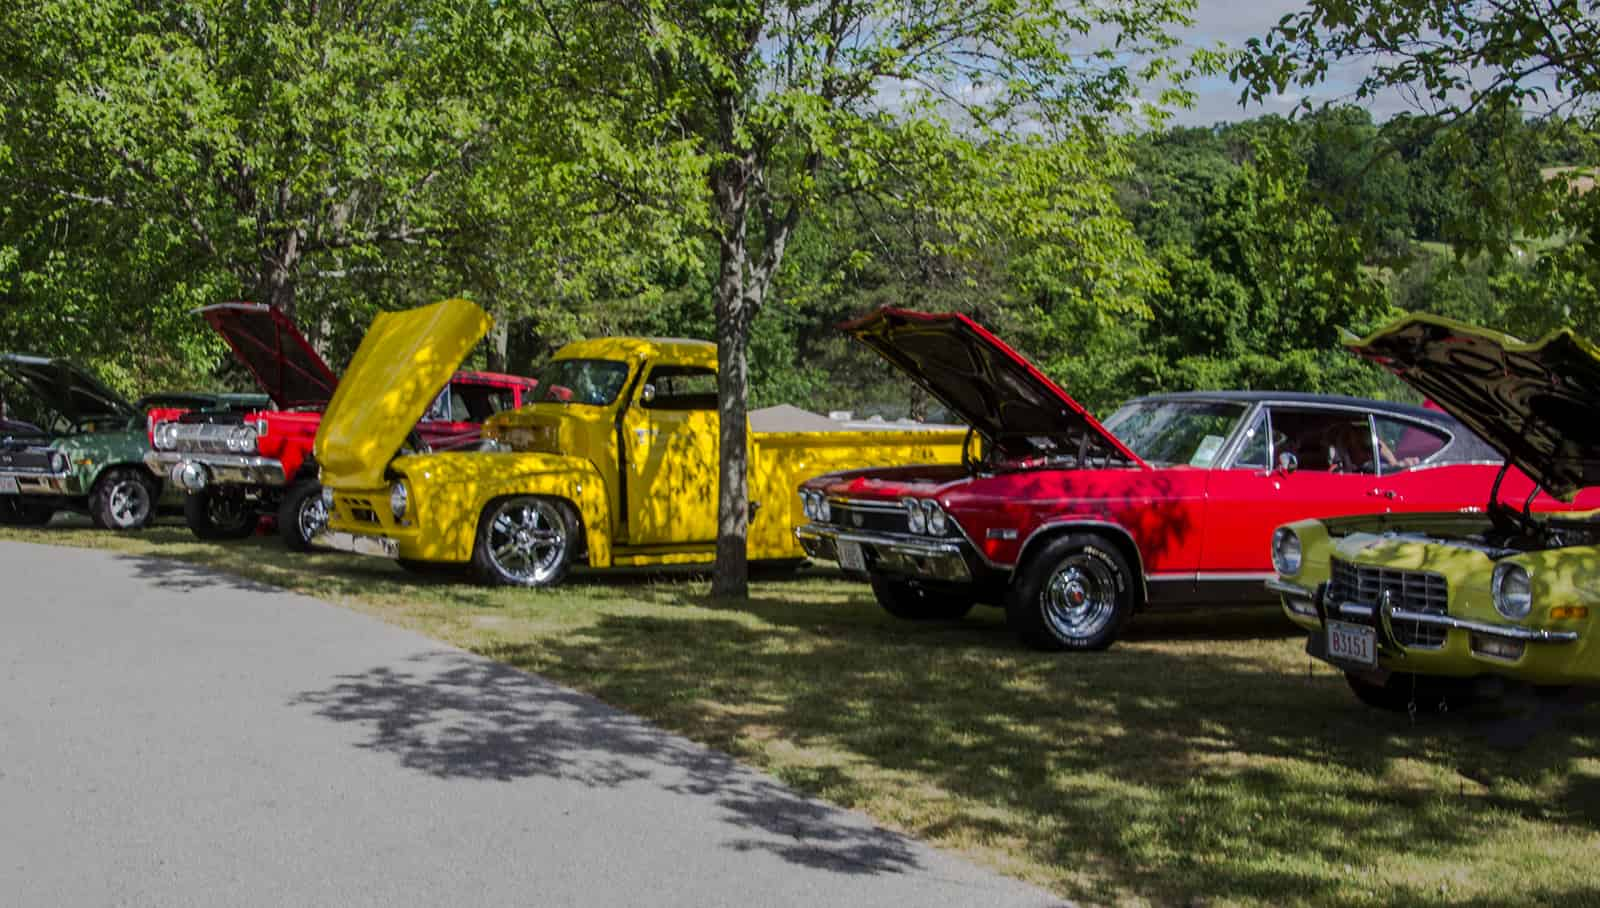 2016 Cars of Summer - Chevy - Ford - Dodge in Red and Yellow